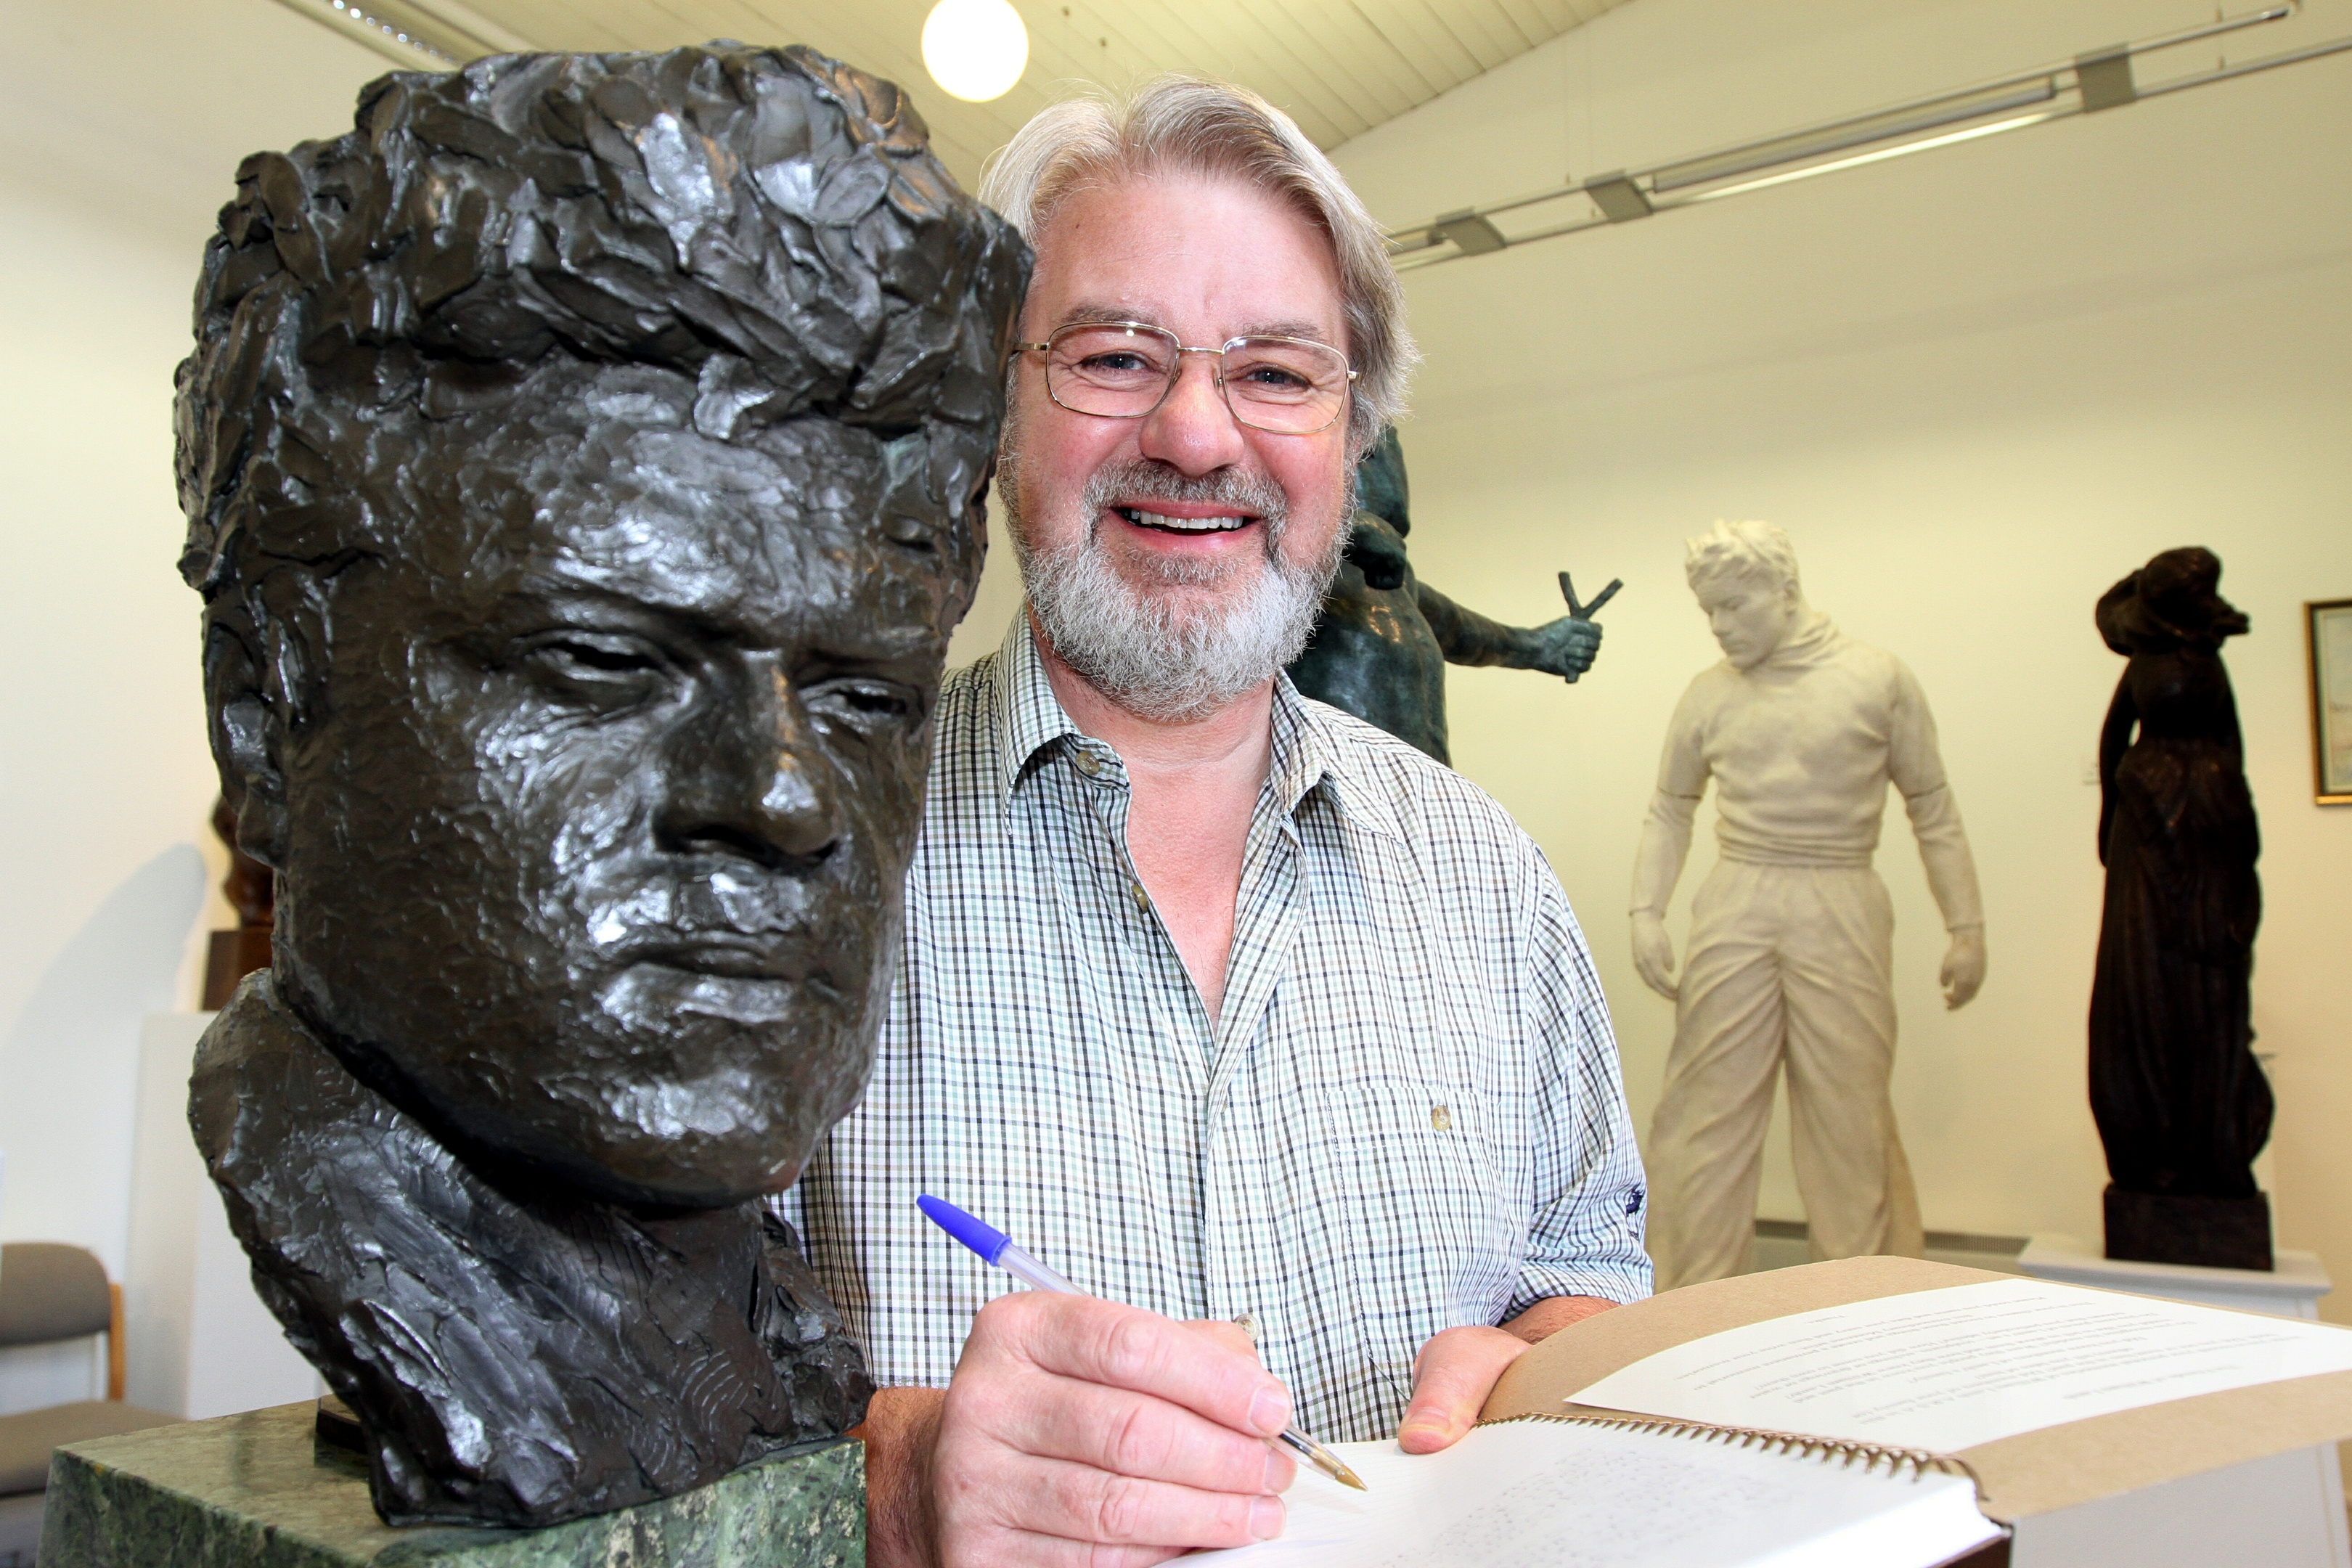 Friends chairman Norman Atkinson signs the memory book alongside a self-sculpture of the man himself.